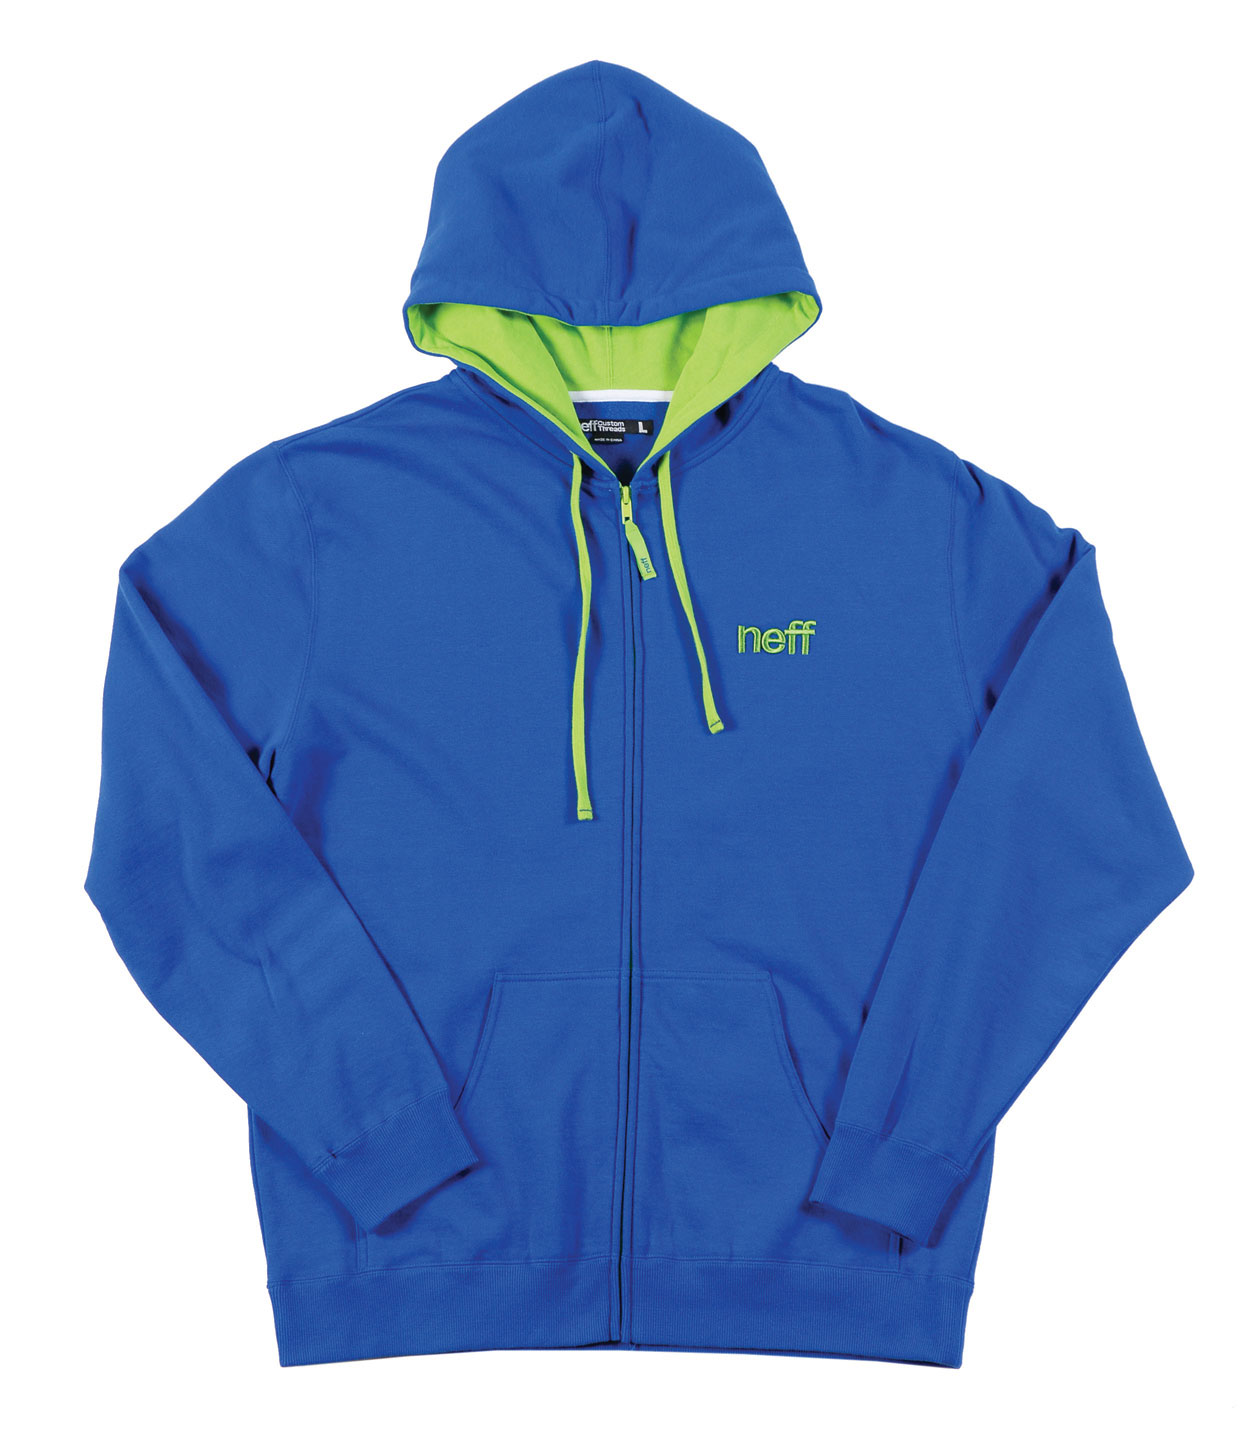 Skateboard This full zip hoodie is for daily use. Made from 80% cotton and 20% polyester This hoodie is designed to keep you warm on those chilly days.Key Features of the Neff Dailyhood Hoodie Blue:  Full zip hoodie  Contrast hood liner  Embroidered logo at chest  Ribbed cuffs and hem  Kangaroo pockets - $23.95